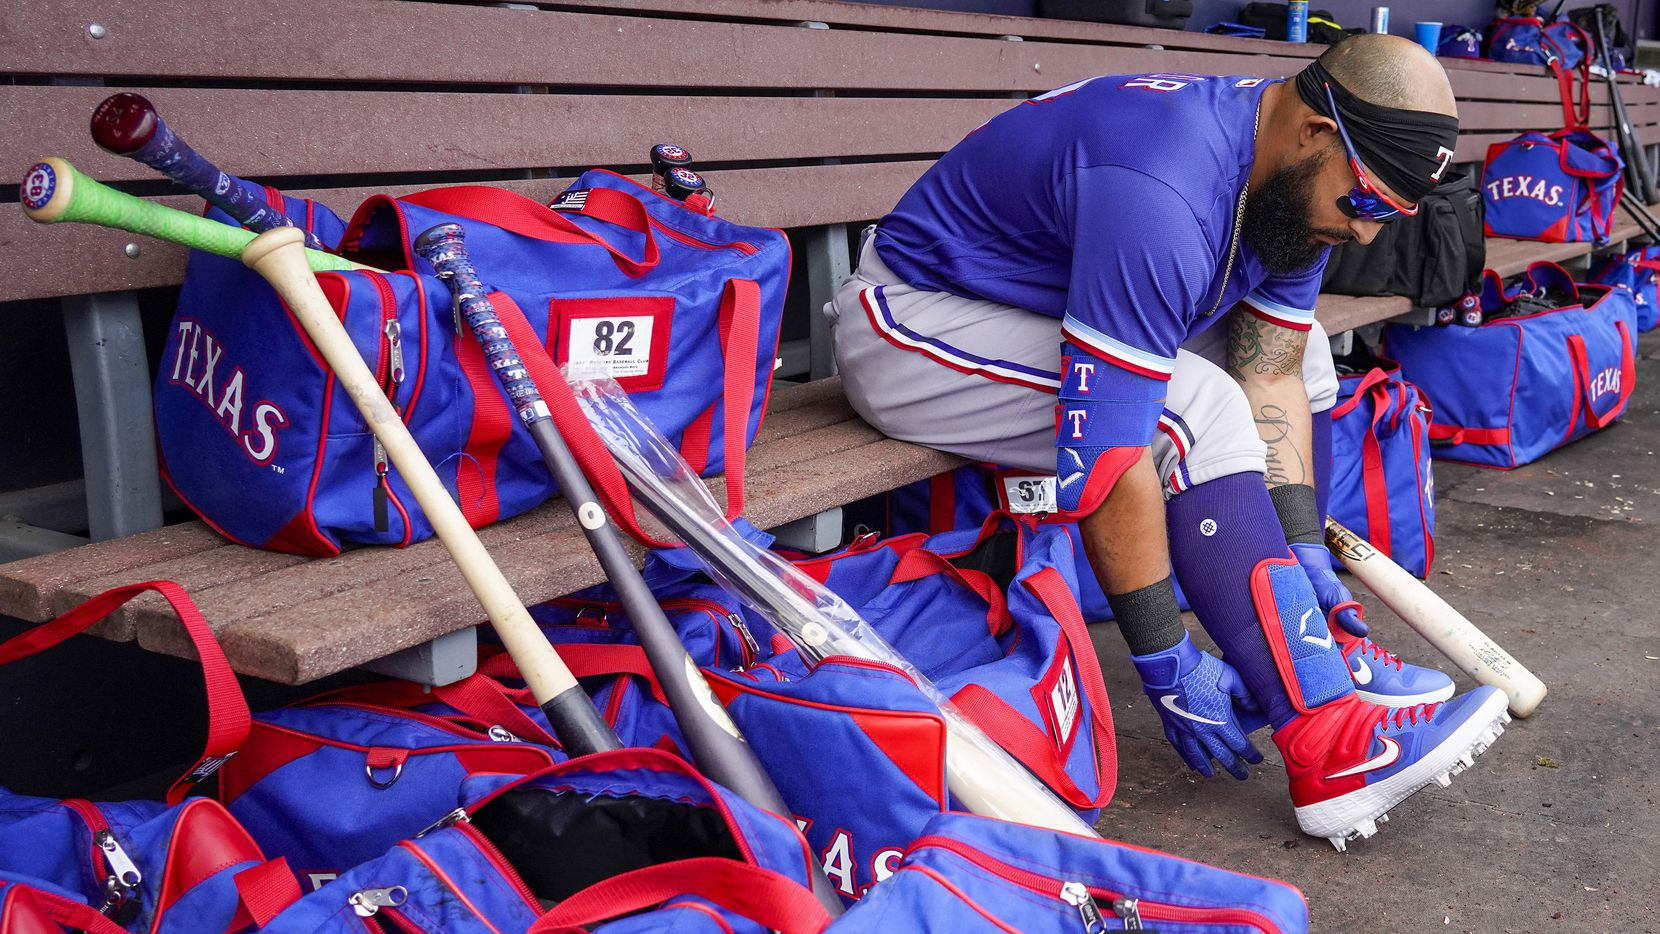 Texas Rangers second baseman Rougned Odor puts on his gear before a spring training game against the Seattle Mariners at Peoria Sports Complex on Sunday, Feb. 23, 2020, in Peoria, Ariz.